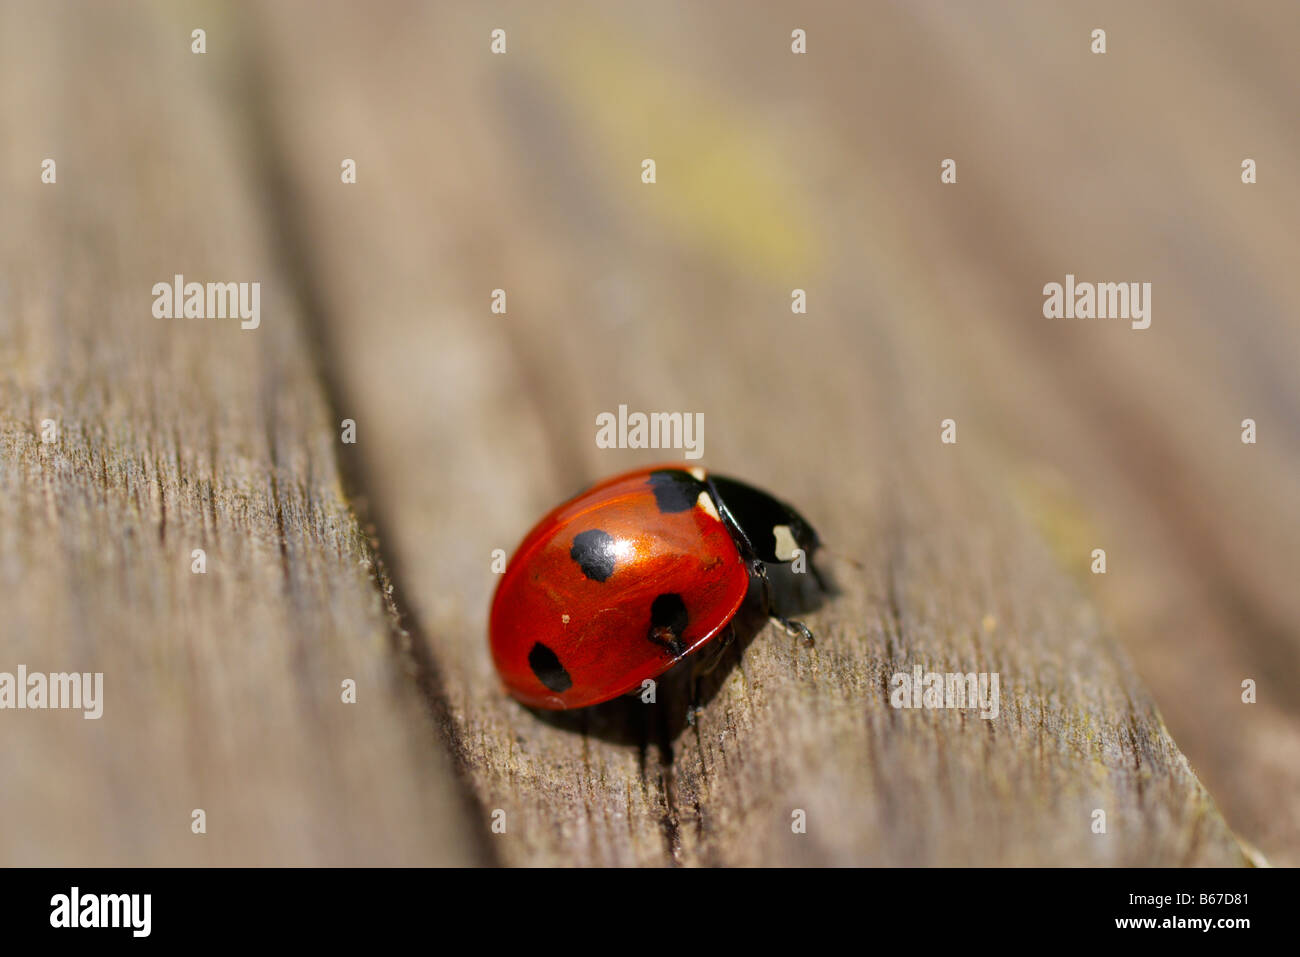 Macro photograph of a laybird from the side on wooden garden decking - Stock Image